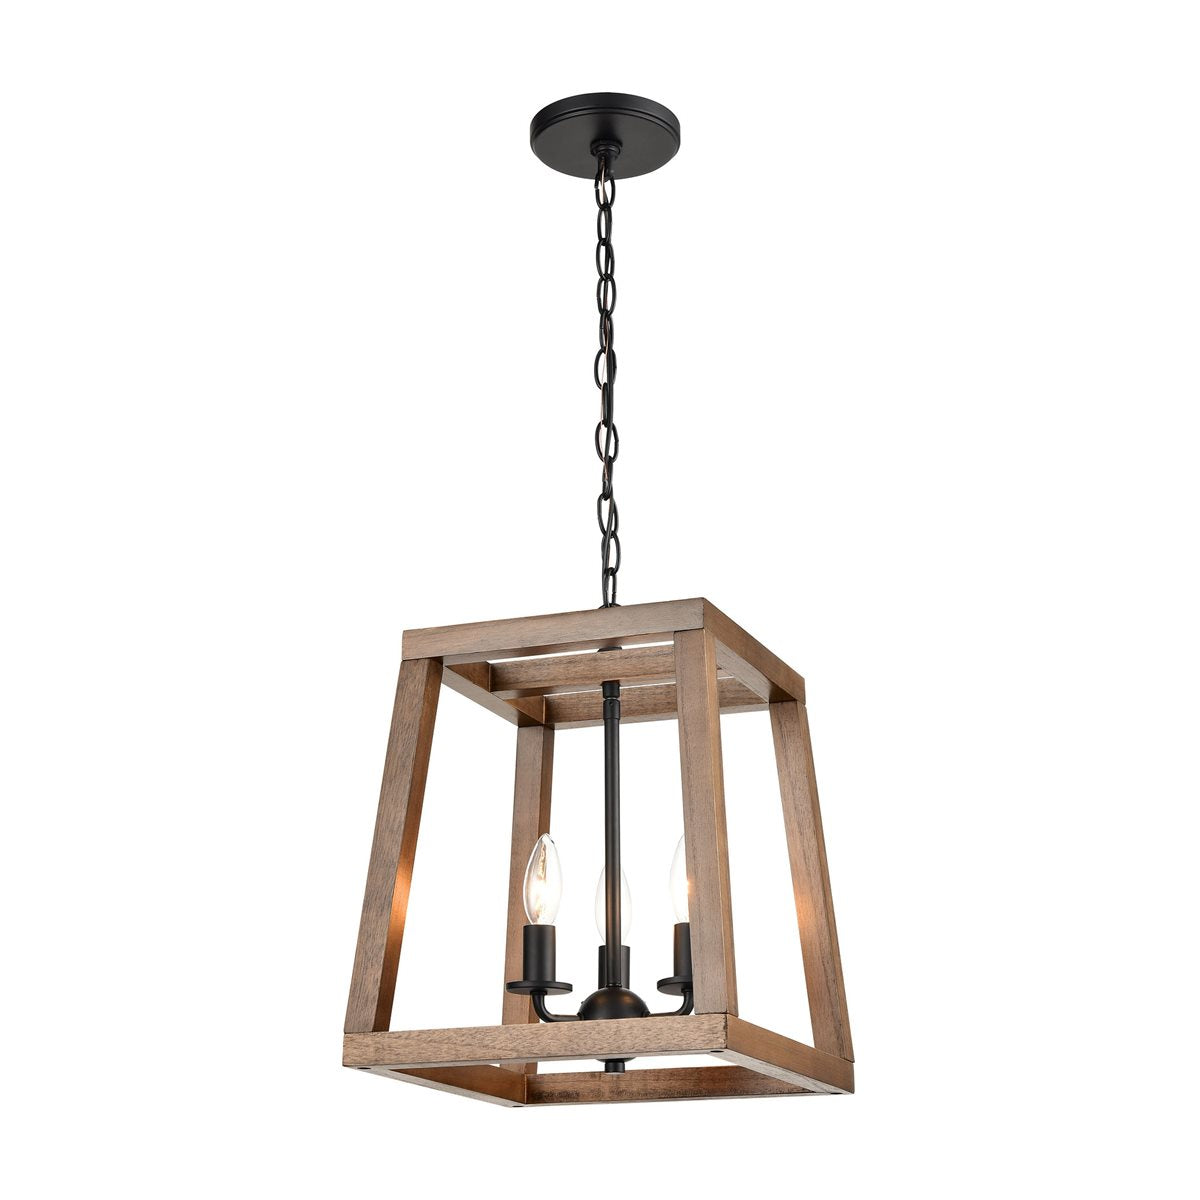 Barrow 3-Light Chandelier in Birchwood and Matte Black